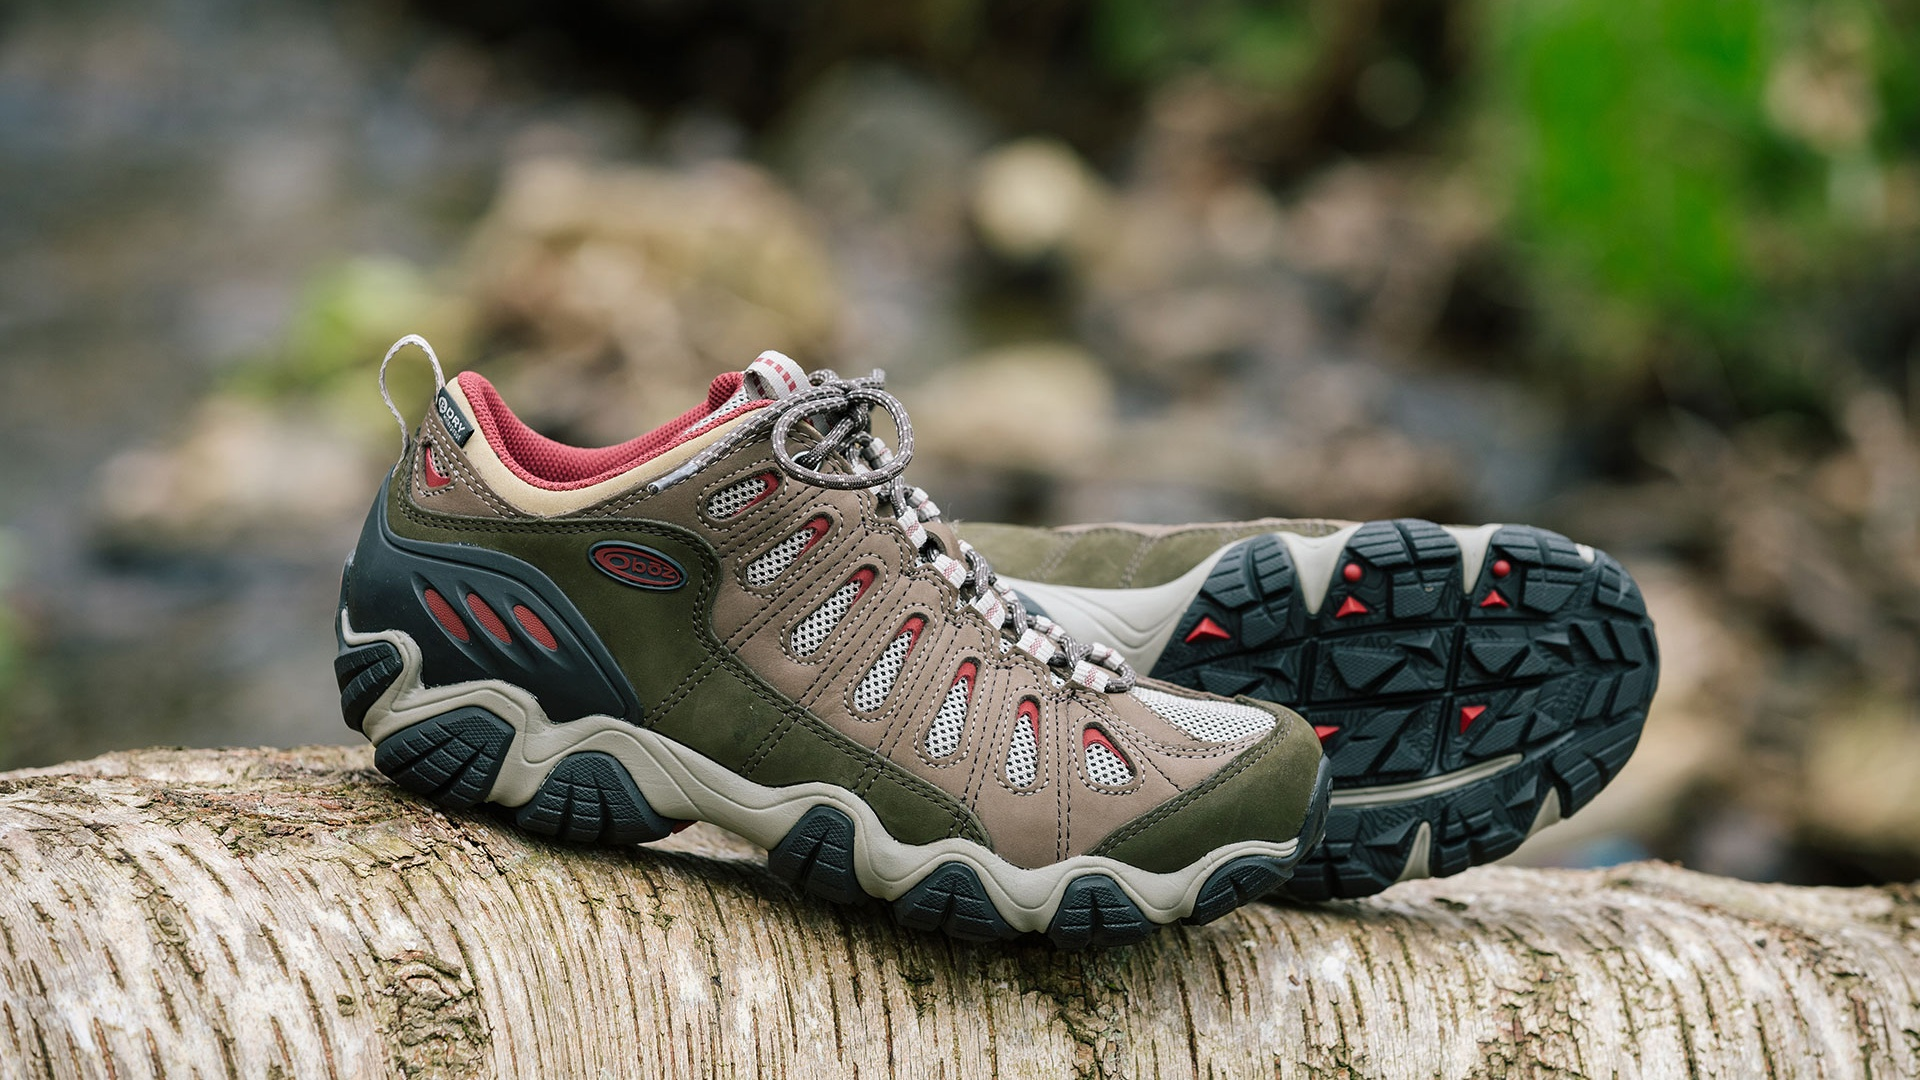 0df67deb92d 13 Best Hiking Shoes- Buyers Guide